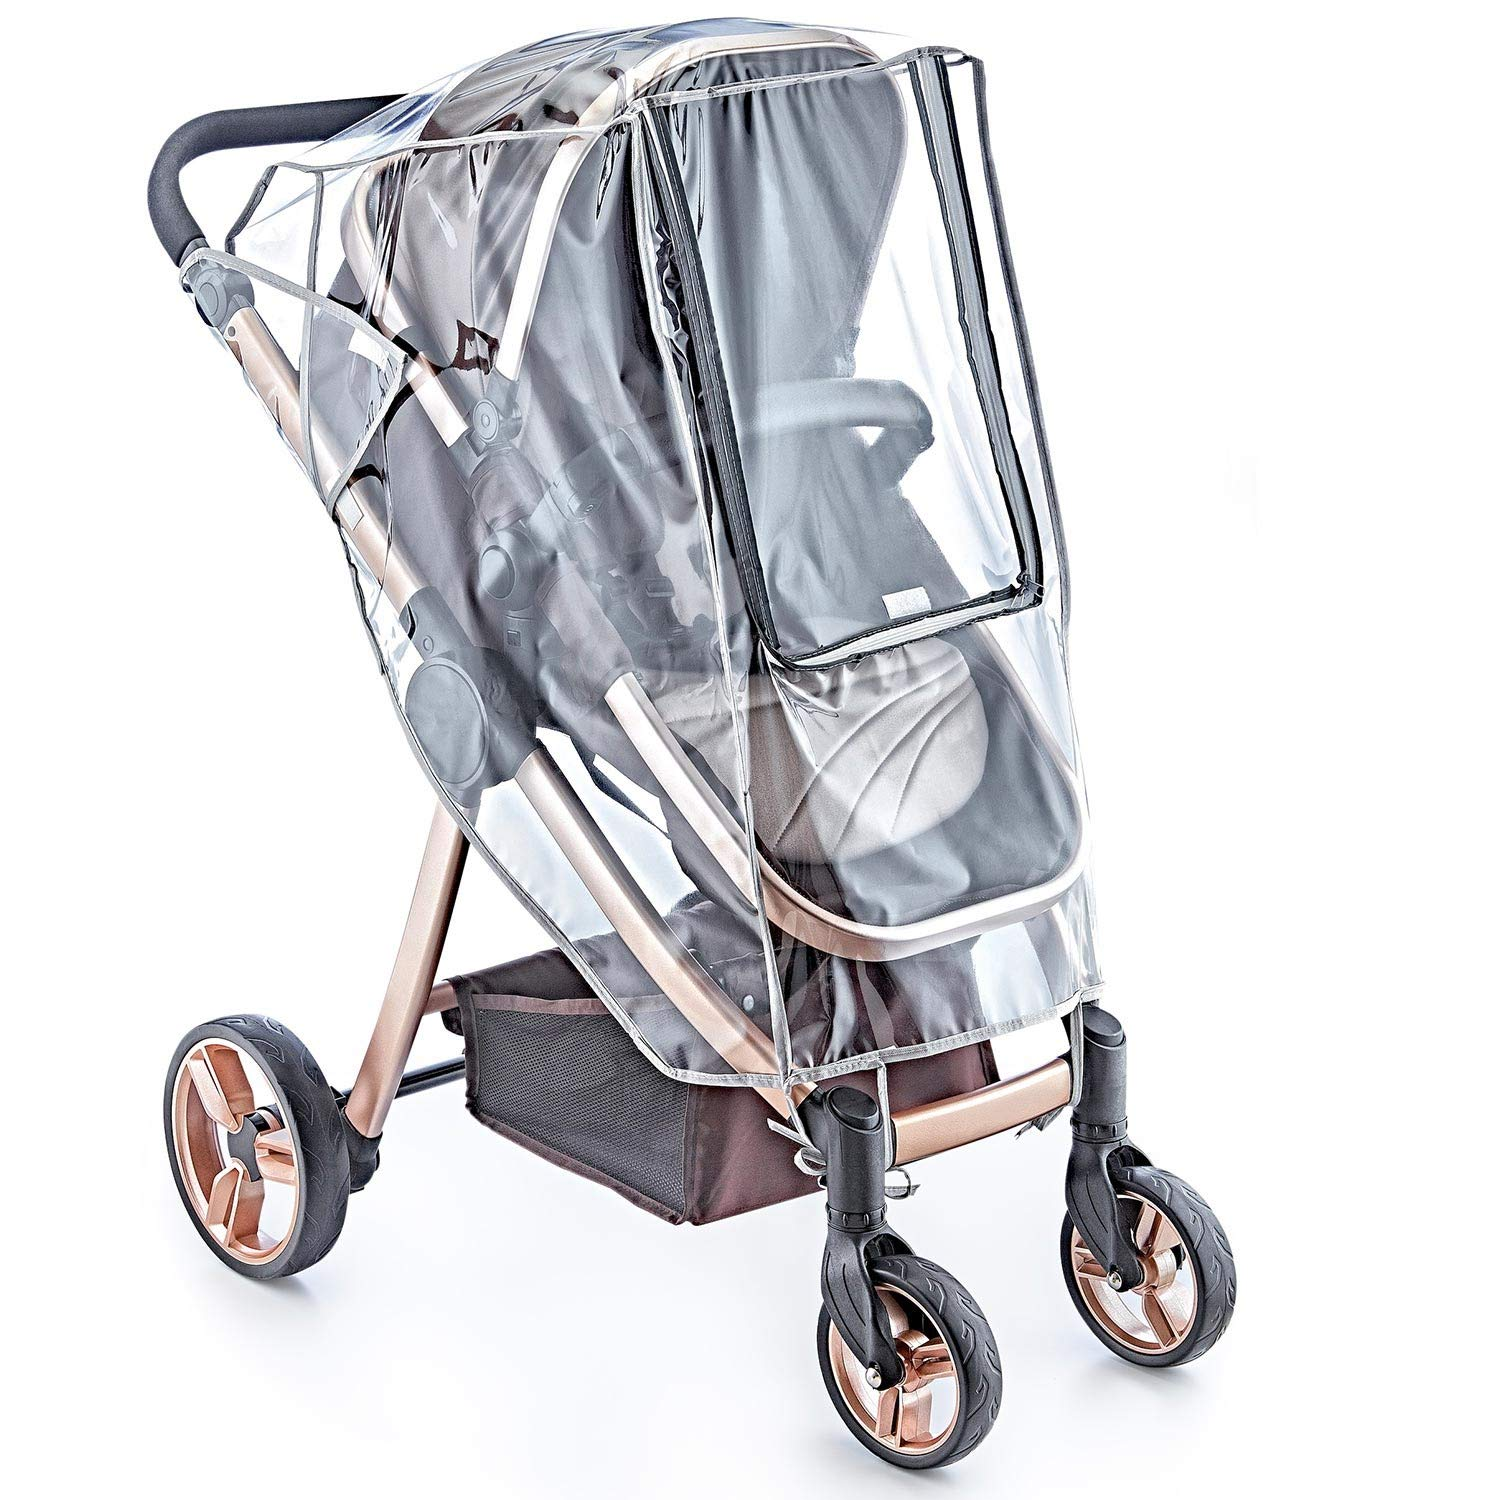 Rain Wind Cover Shield Protector for CHICCO Infant Baby Child Stroller Boy Girl